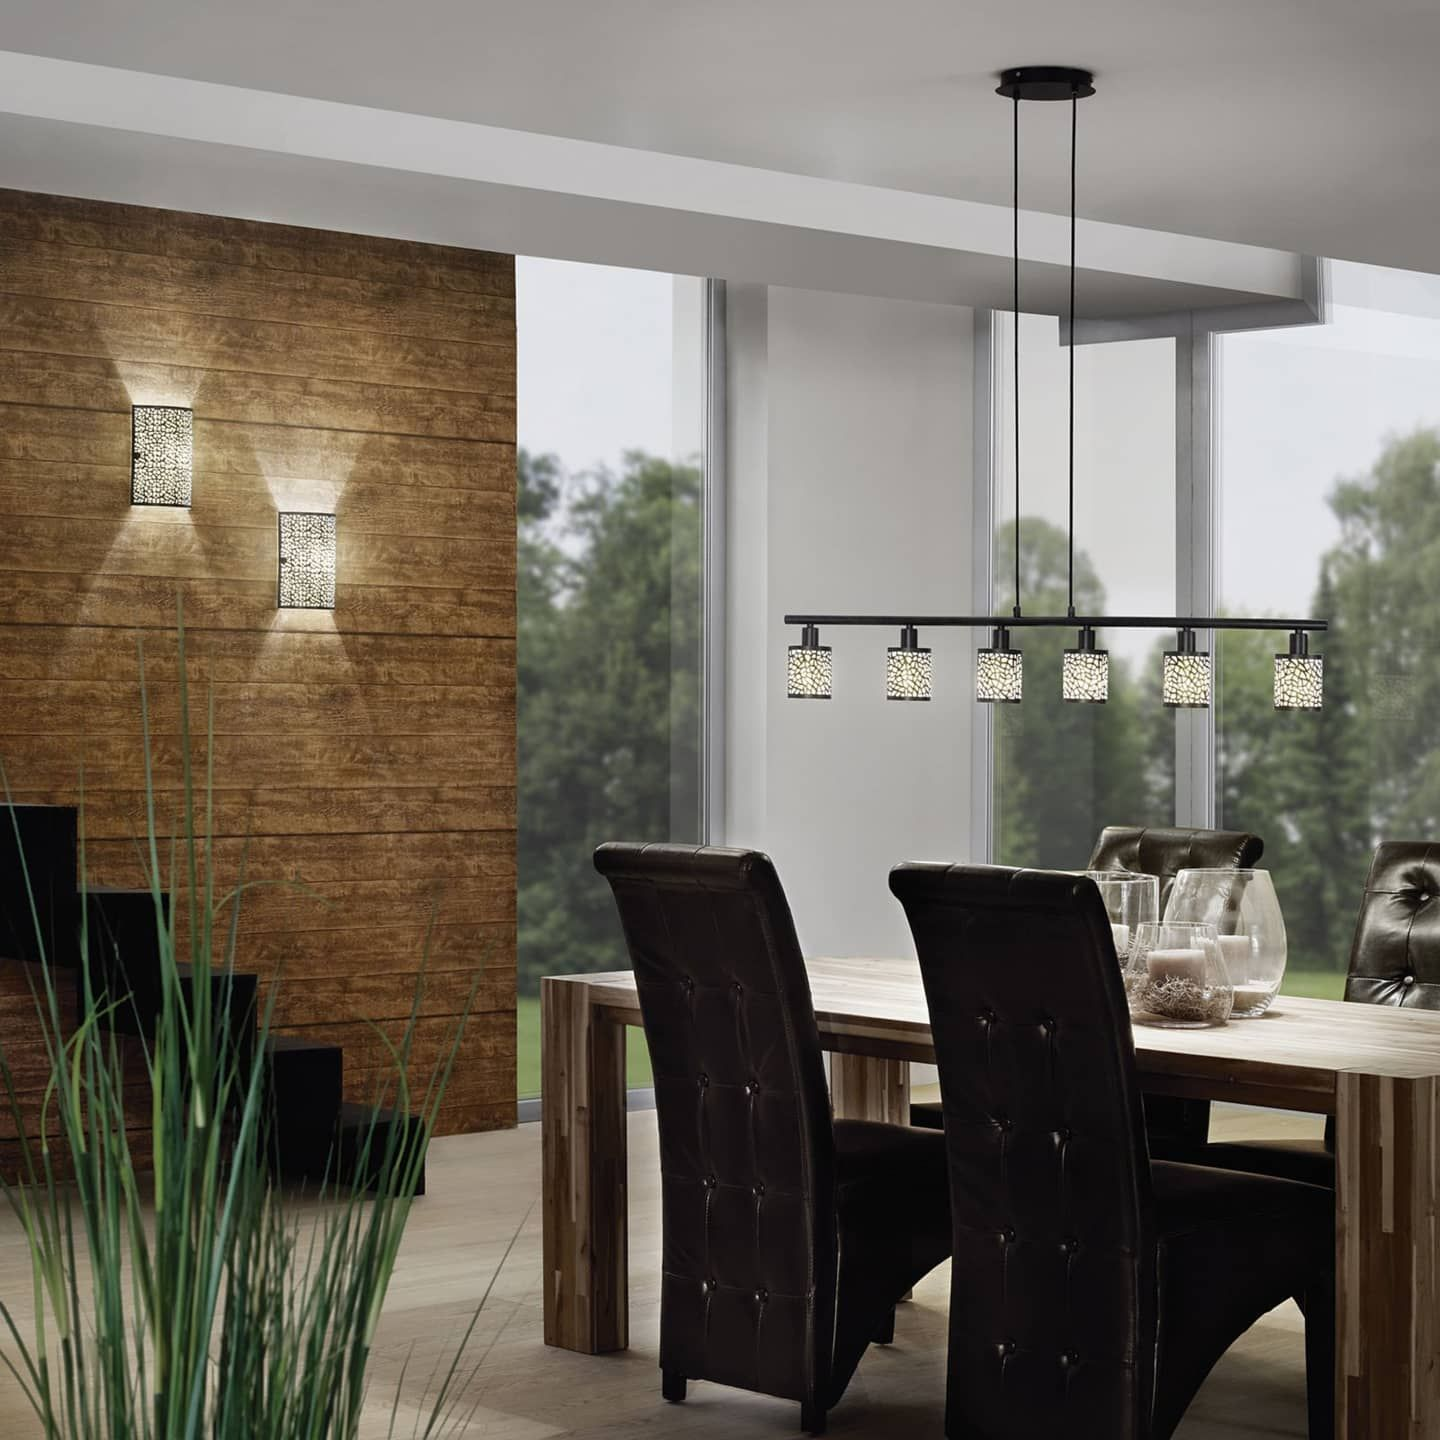 Homeinterior Lighting Design: Illuminating A Living Space Needs To Be Carefully Thought